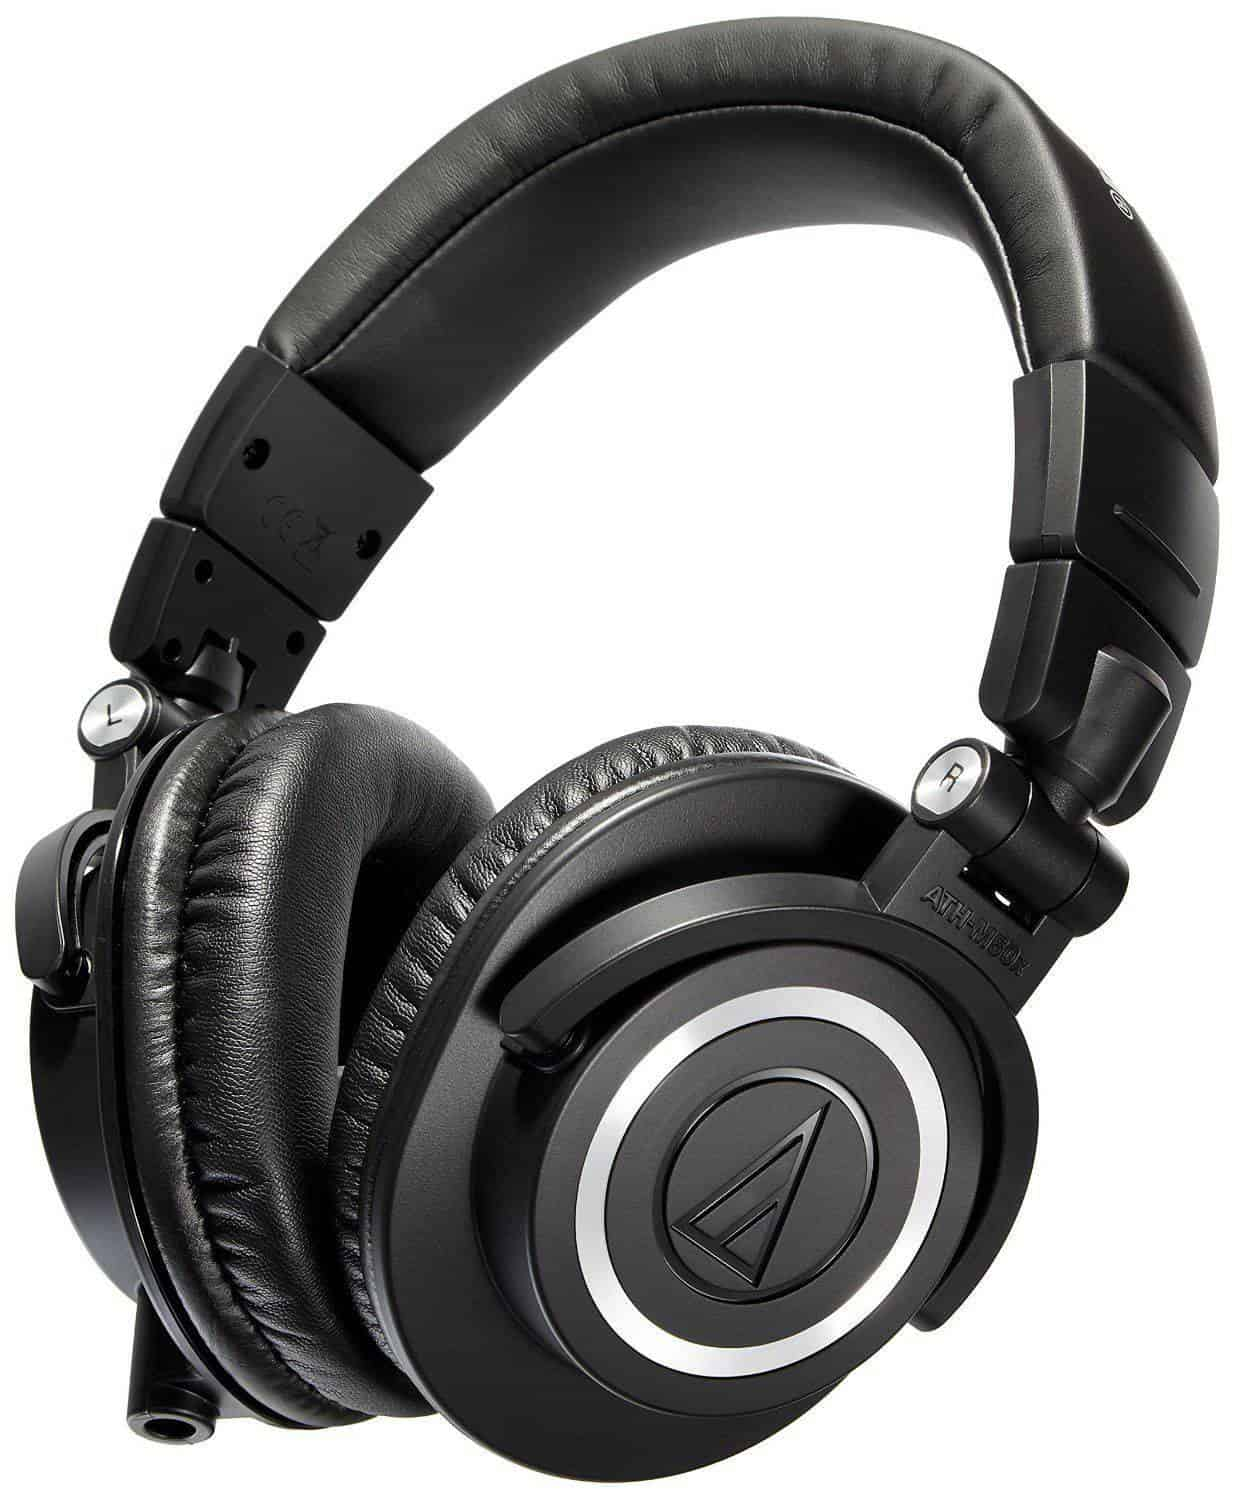 Audio Technica ATH M50x Professional Studio Monitor Headphones 01 1